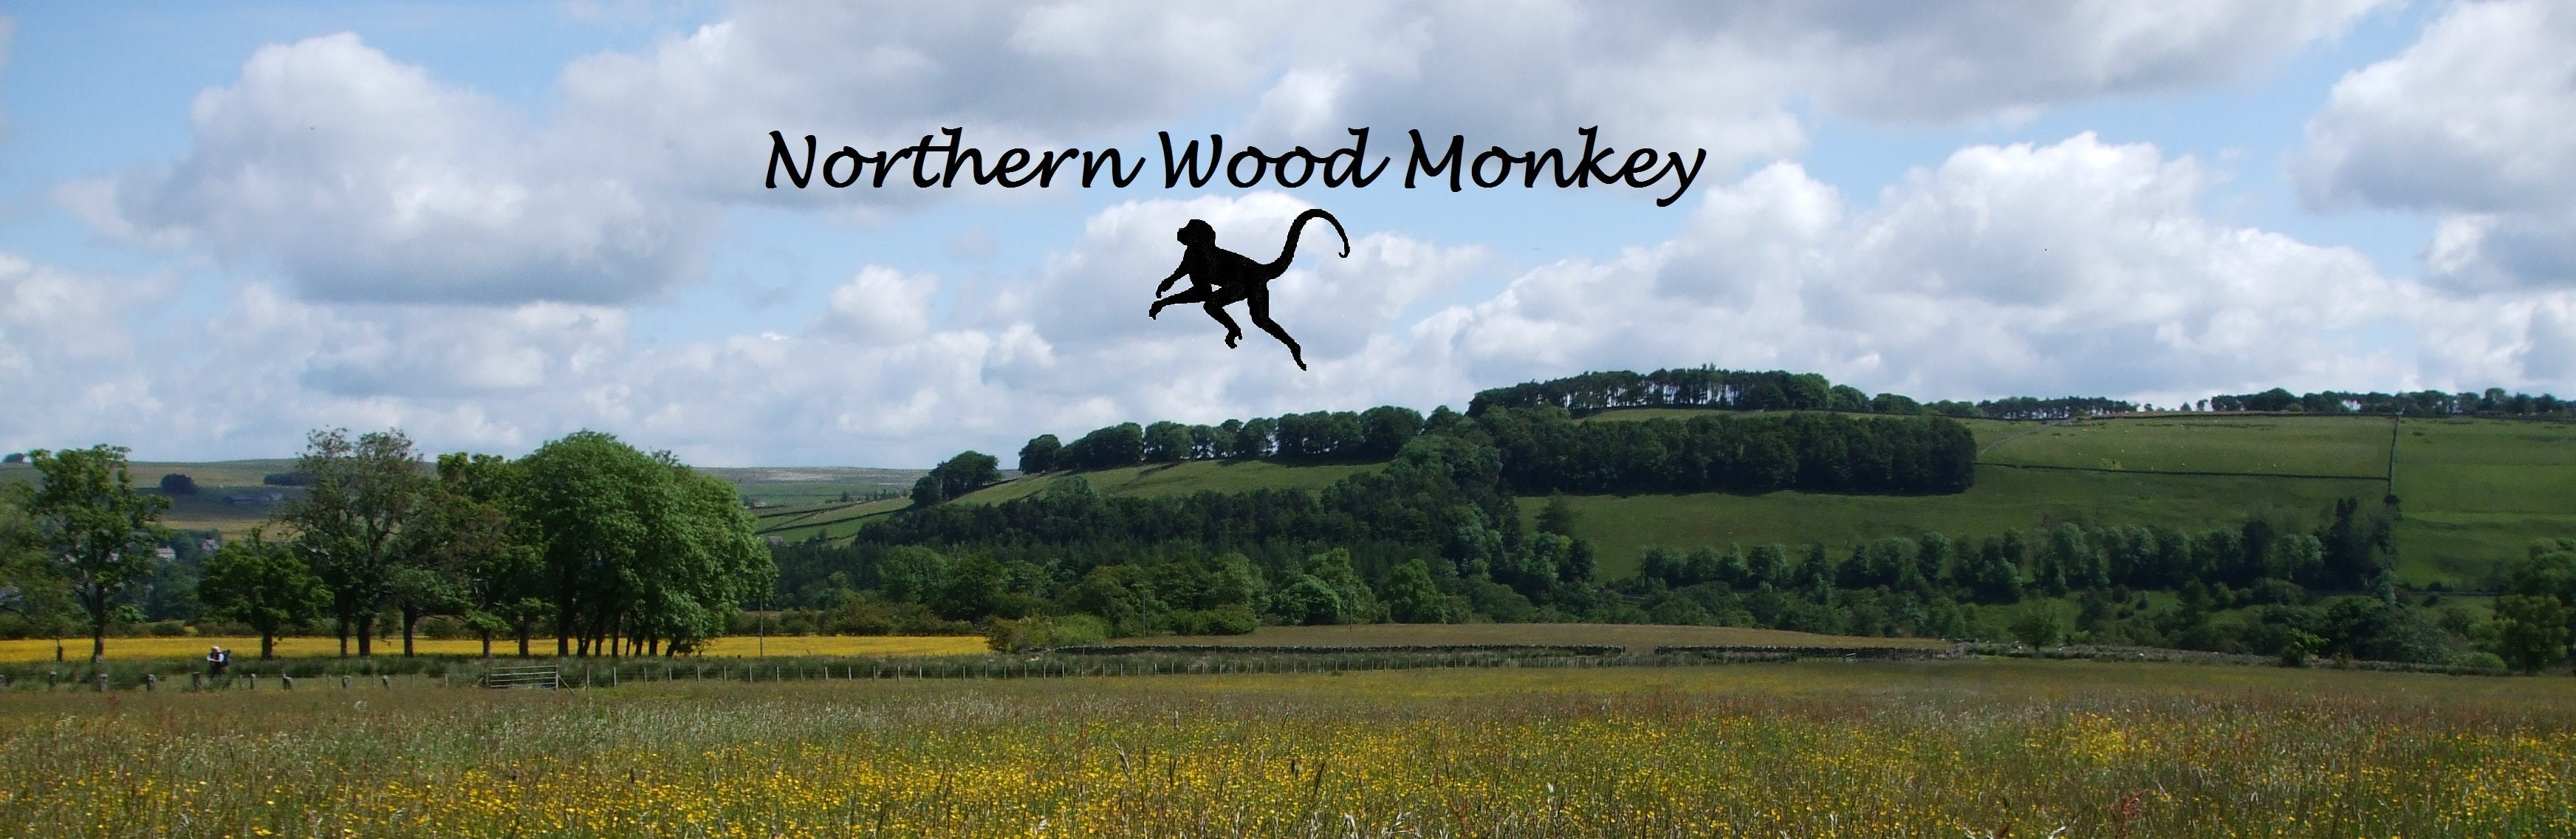 Northern Wood Monkey